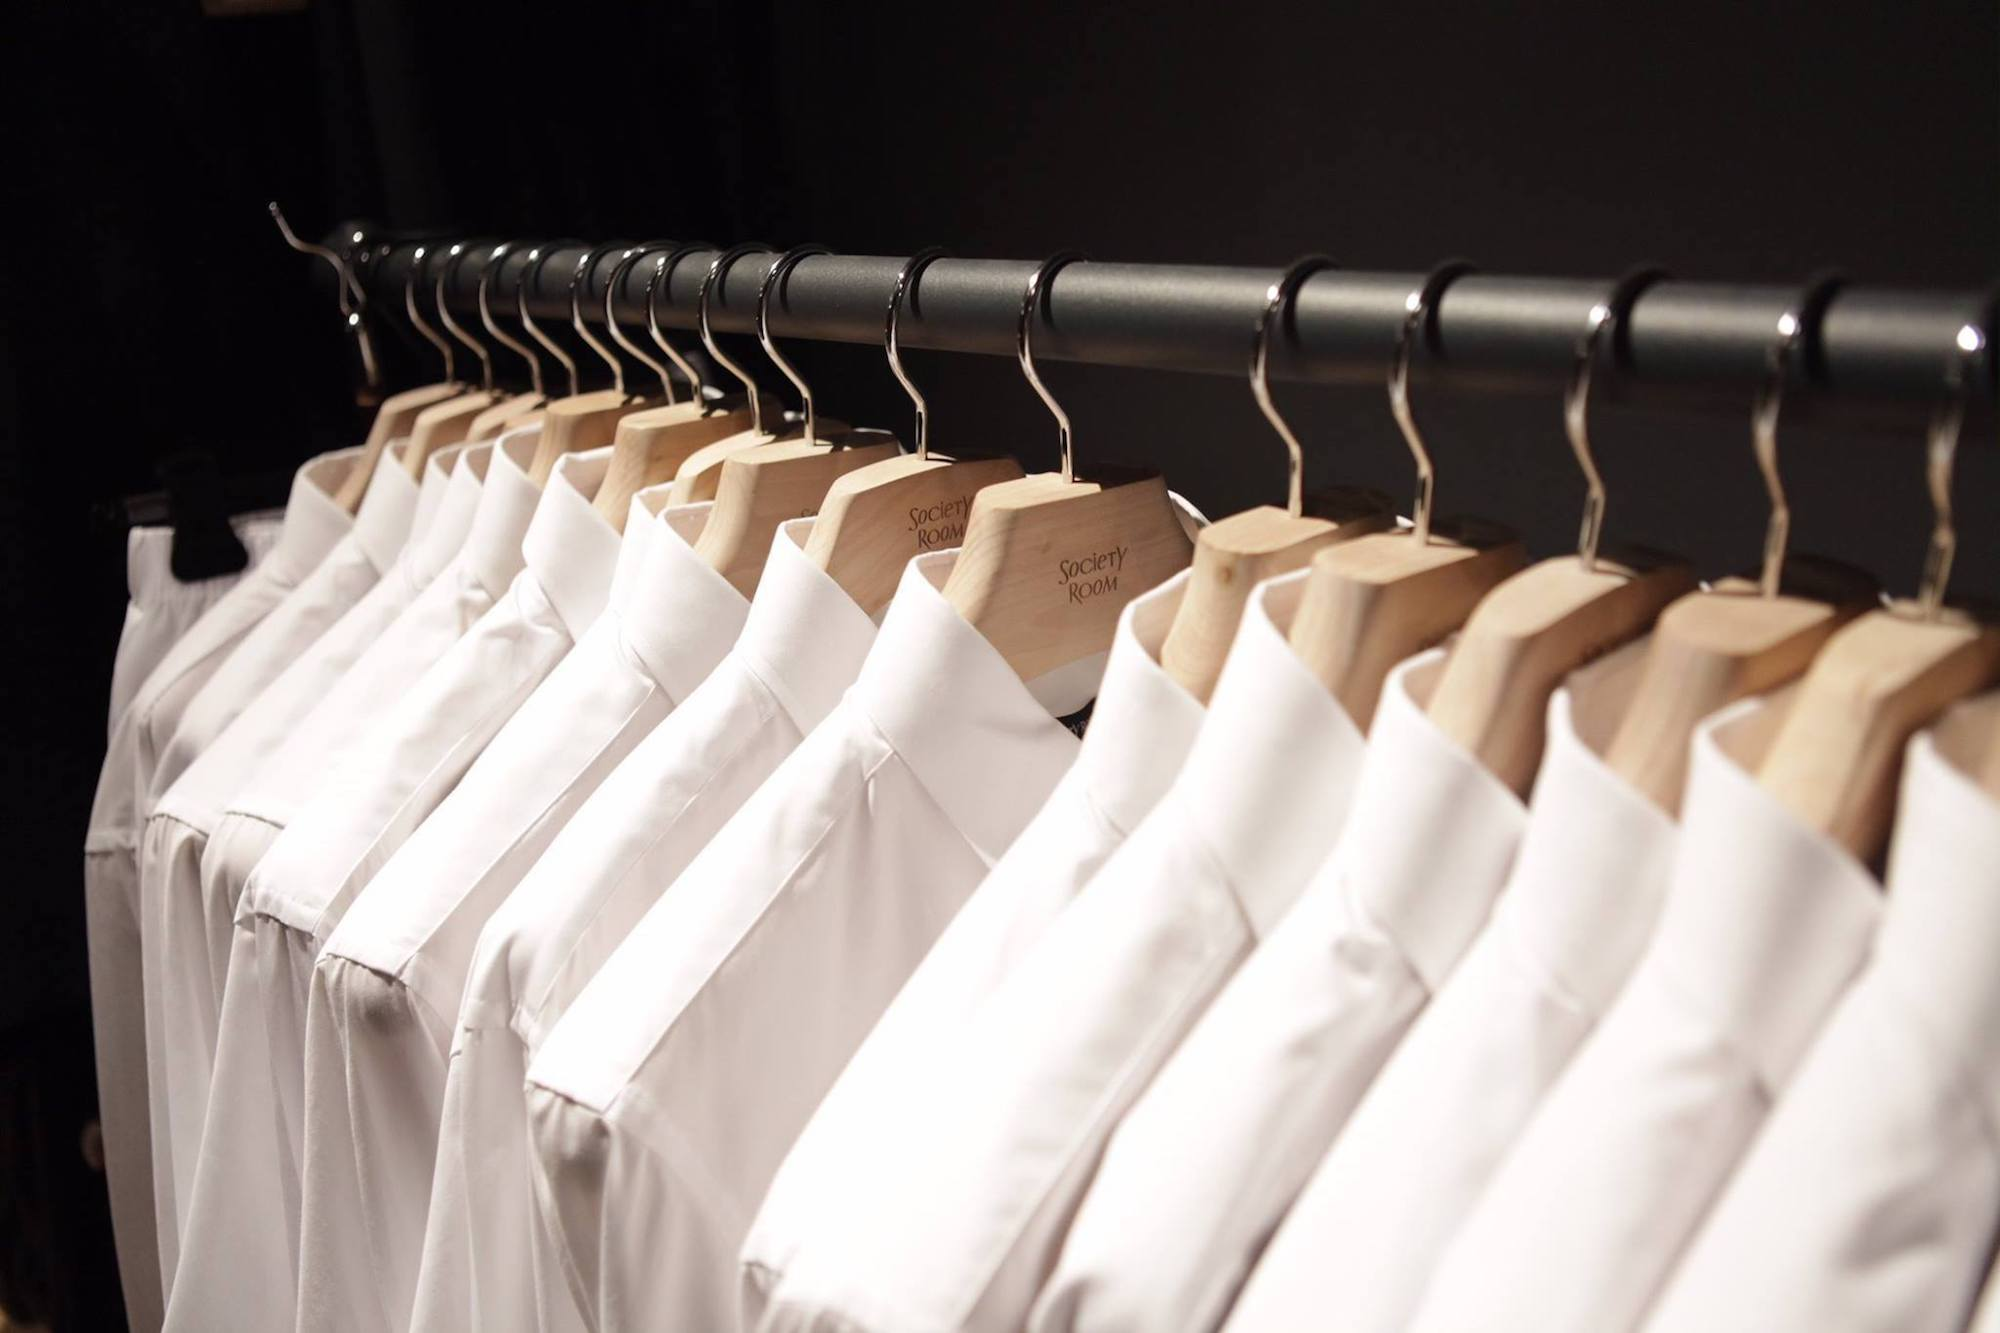 Where to buy the perfect white shirt in Paris? At secret luxury Paris concept store the Society Room.